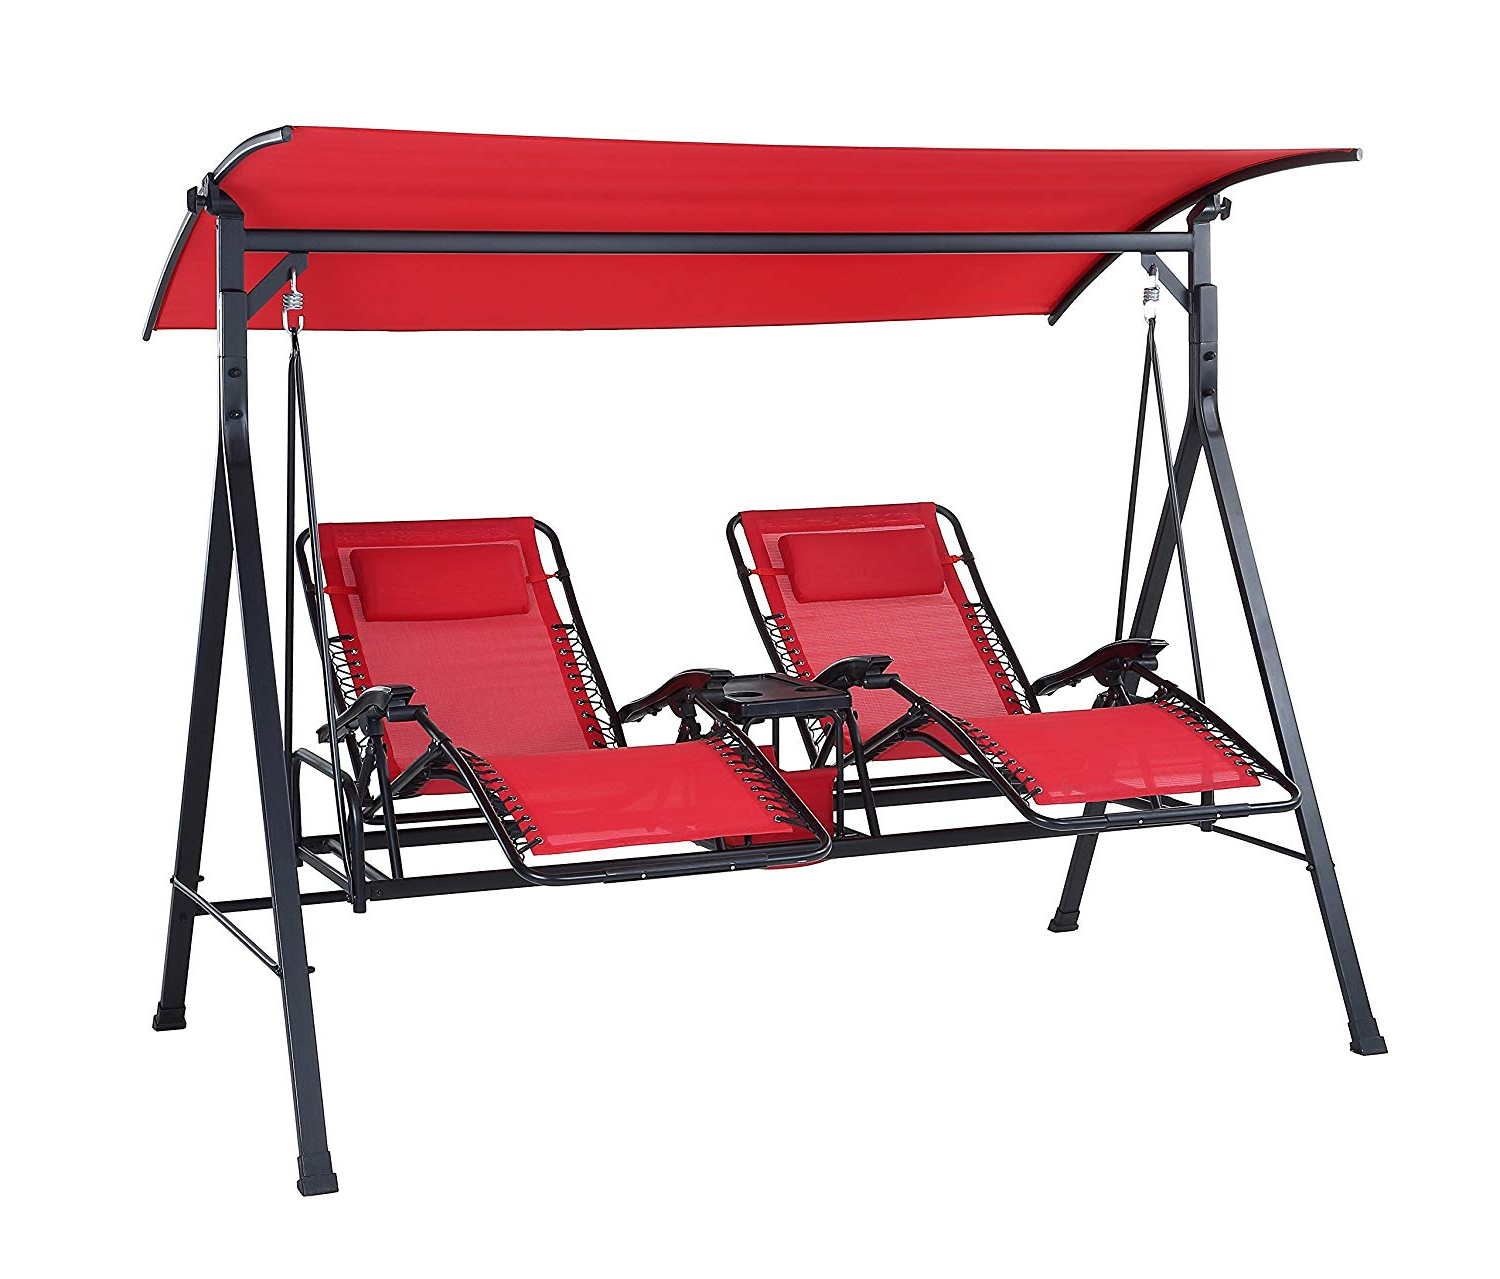 [%Best Outdoor Reclining Zero Gravity Swing [2020 Update In Favorite 2 Person Black Steel Outdoor Swings|2 Person Black Steel Outdoor Swings Within Best And Newest Best Outdoor Reclining Zero Gravity Swing [2020 Update|Best And Newest 2 Person Black Steel Outdoor Swings Throughout Best Outdoor Reclining Zero Gravity Swing [2020 Update|Well Known Best Outdoor Reclining Zero Gravity Swing [2020 Update Intended For 2 Person Black Steel Outdoor Swings%] (View 1 of 25)